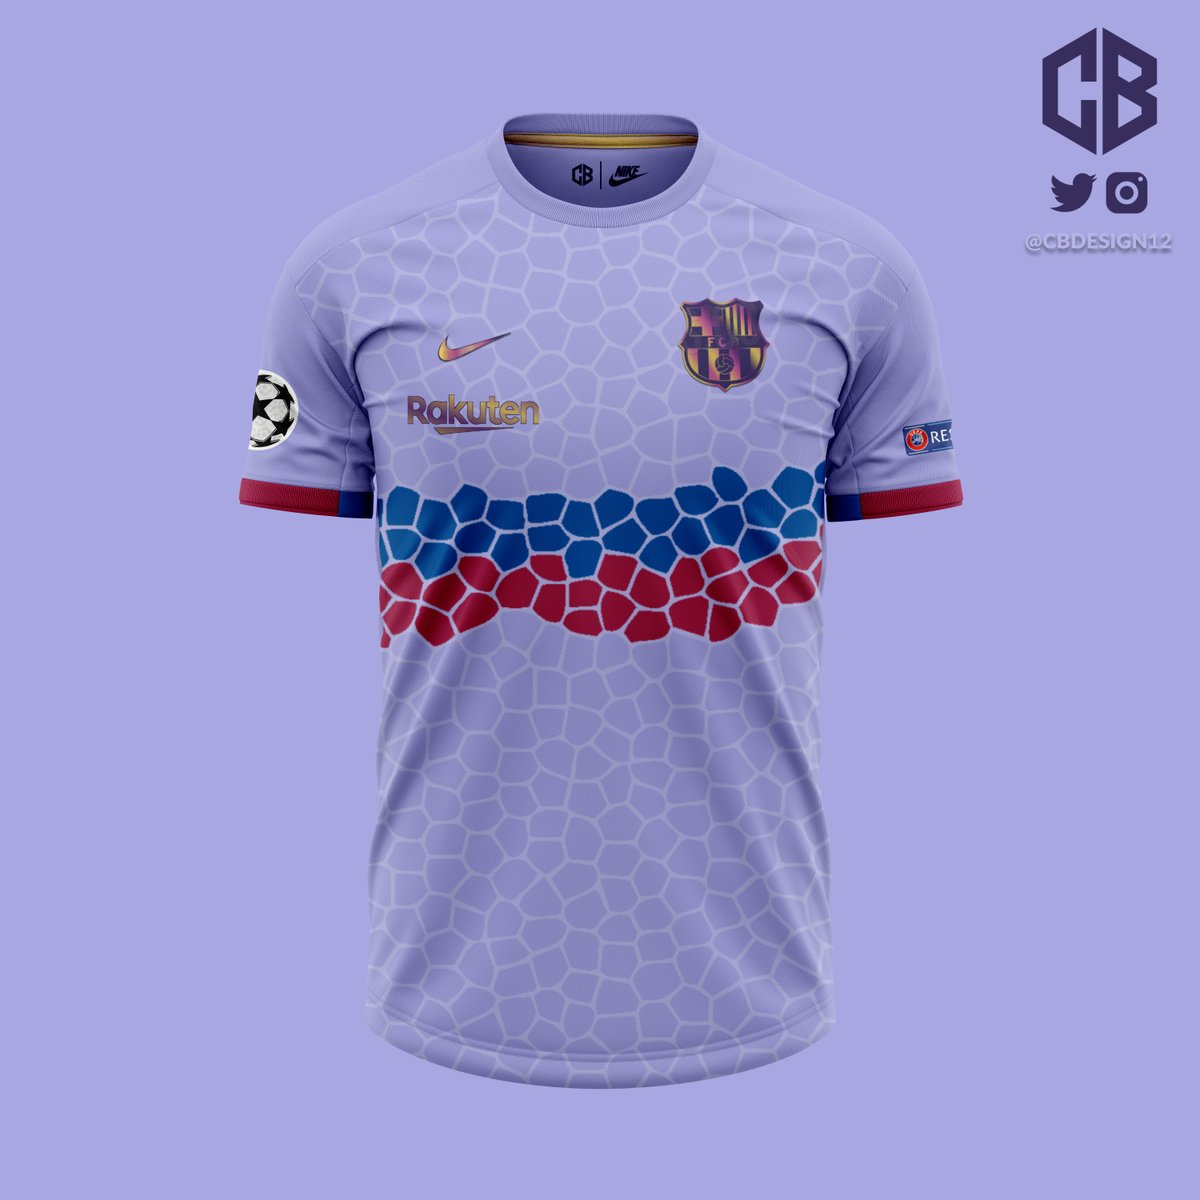 ✏️ FC Barcelona | Away 👕 Nike  #FCB #FCBarcelona #ForçaBarça #Barcelona #Culers #OnlyForCulers #Messi #Griezmann #Koeman #Blaugrana #Barça #Nike #ConceptKit #KitDesign #FootballKitDesign #CBKits  If you like it, please 🔄 and ❤. Thank you for the suggestion @Footy_Headlines!